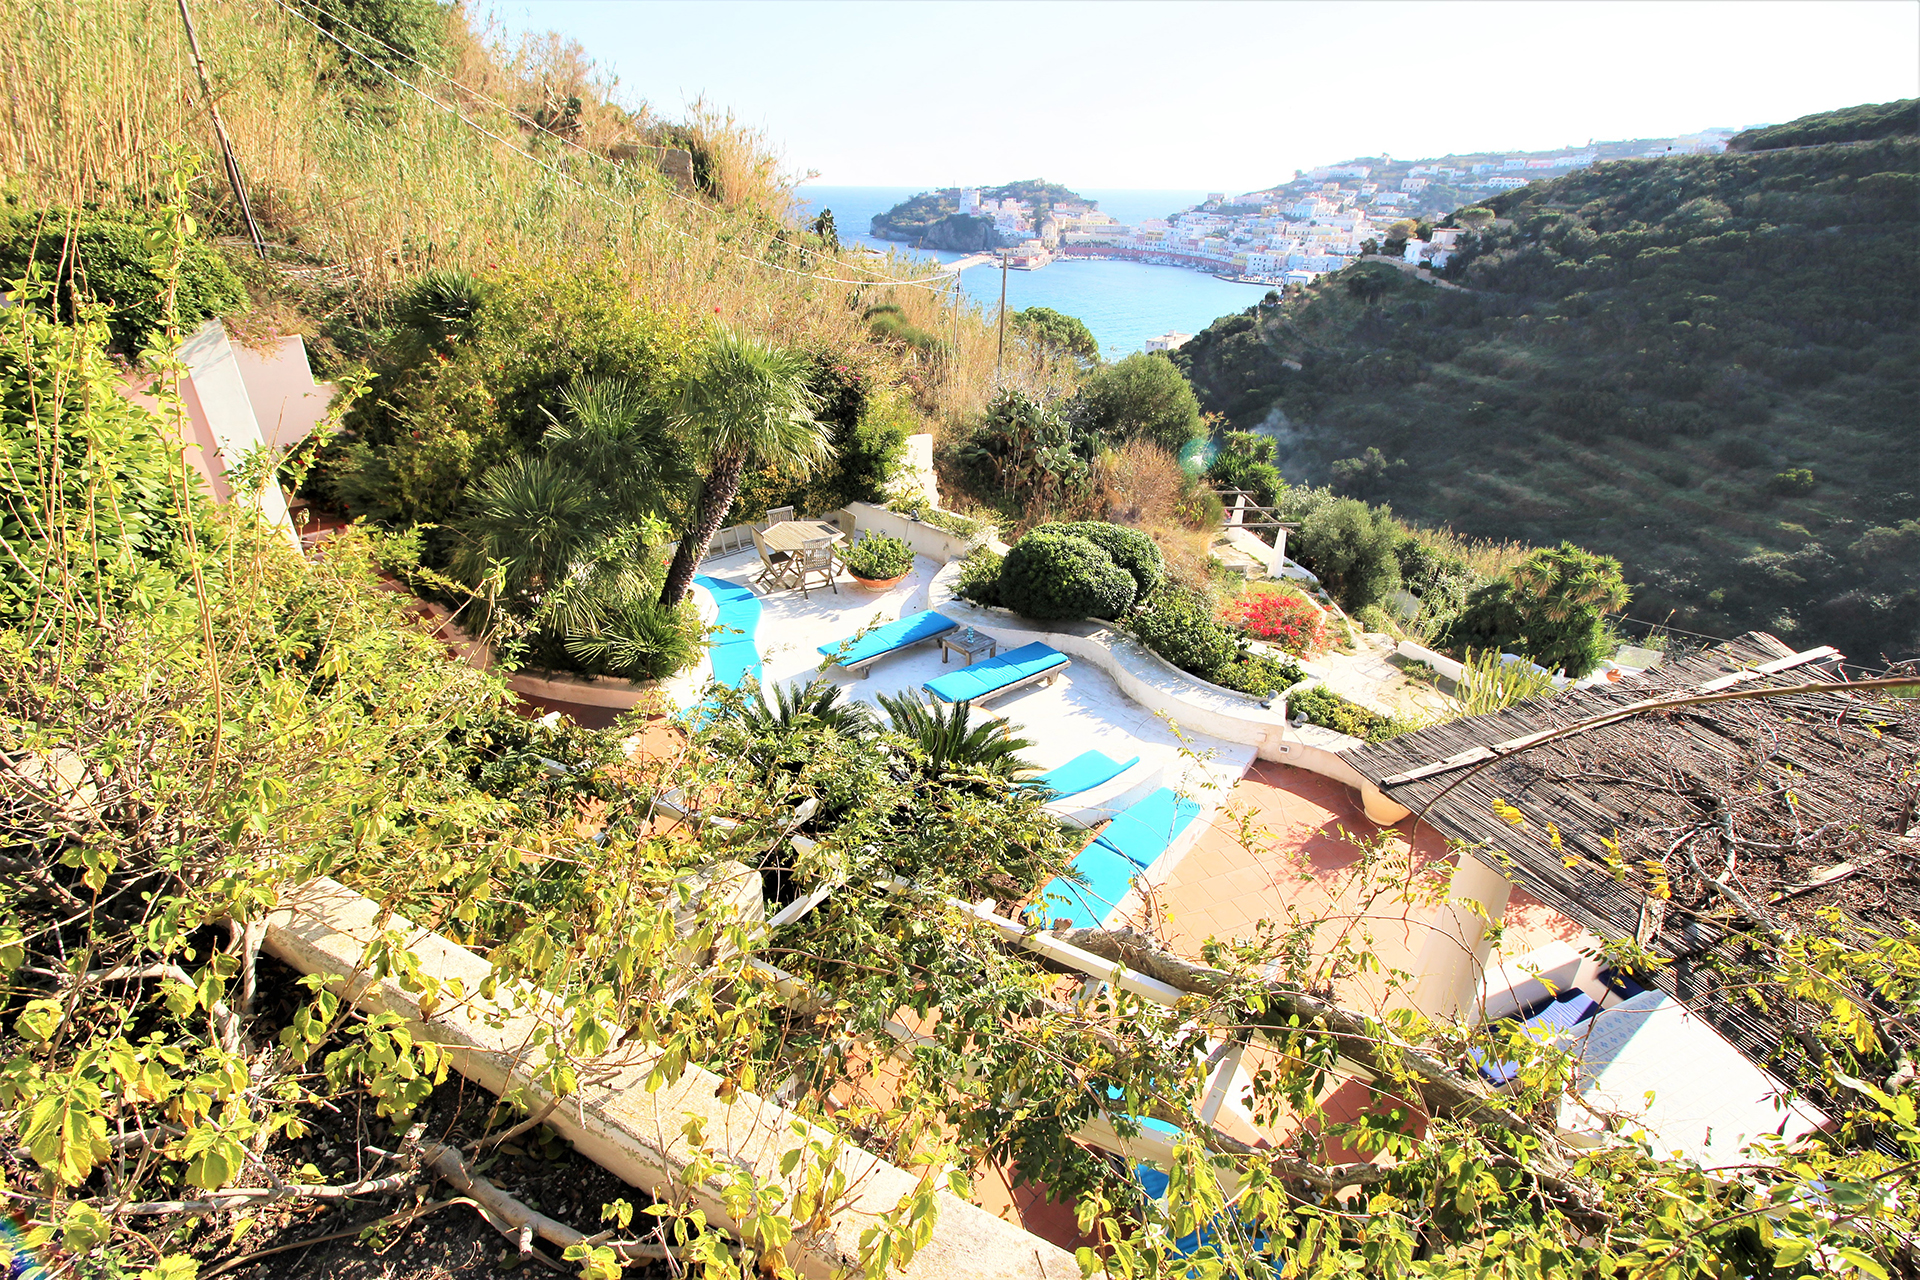 A view onto a porch with swimming pool and the bay and harbor below